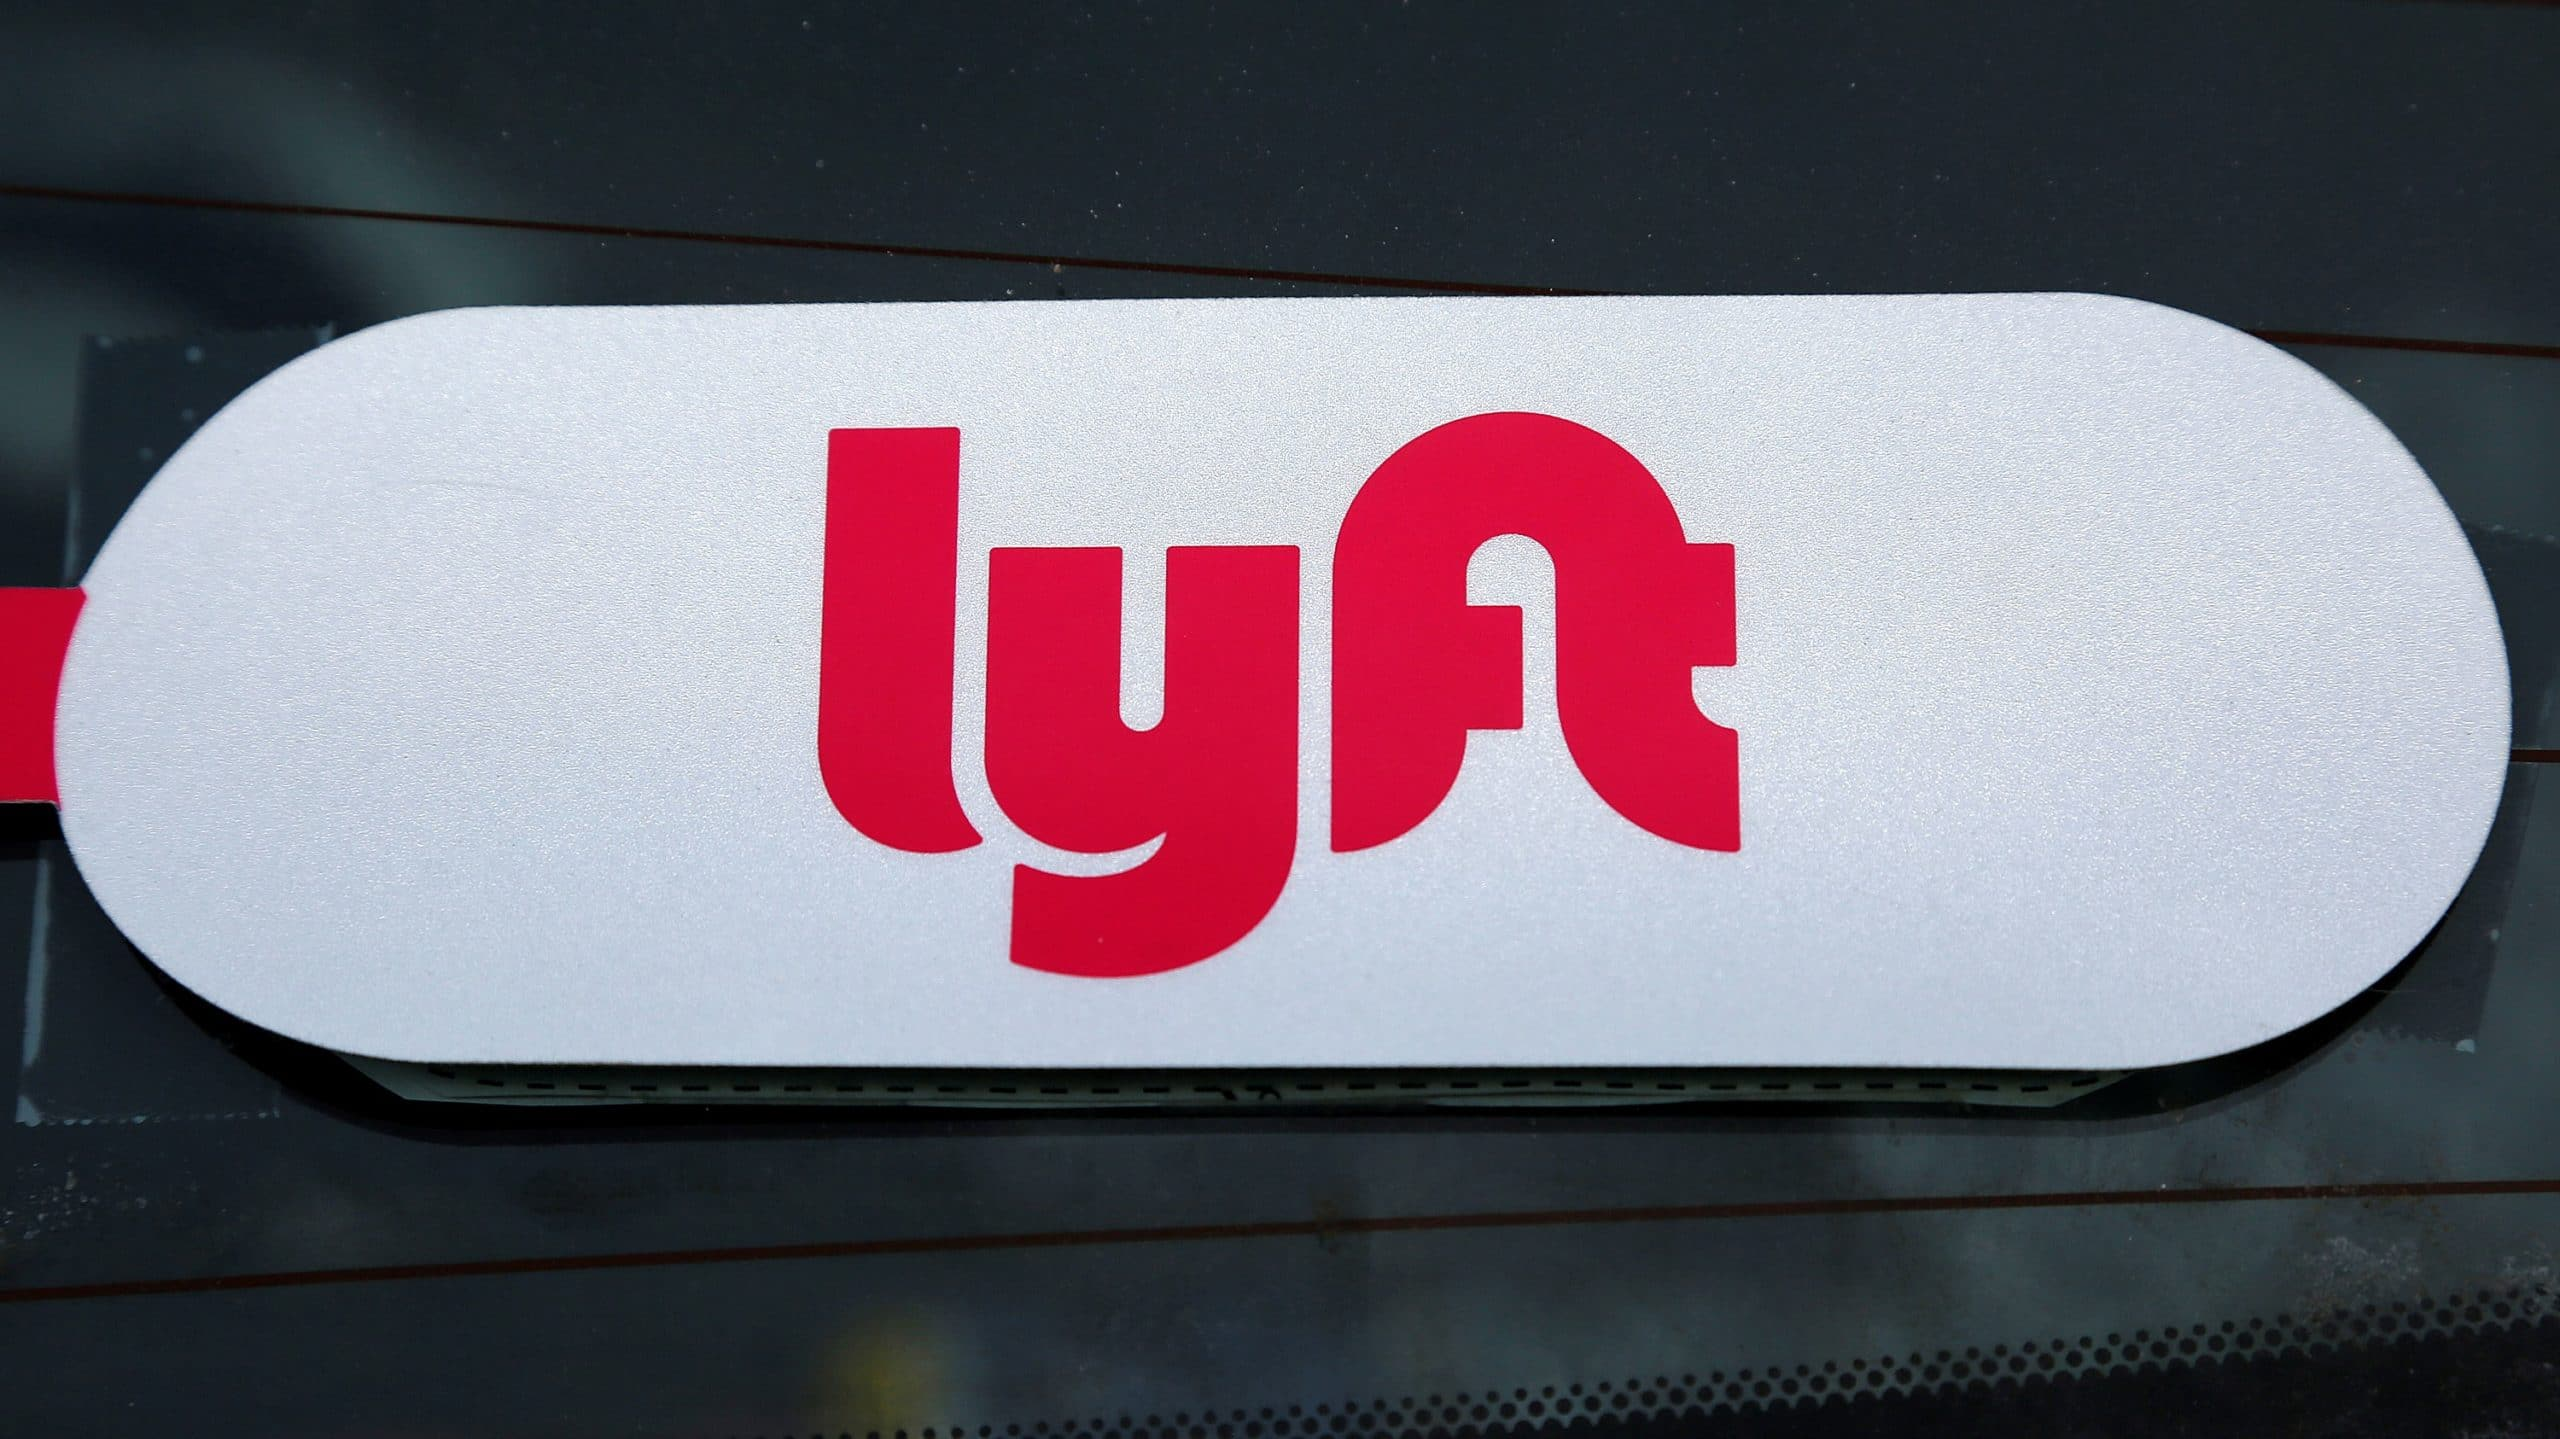 lyft sticker on car